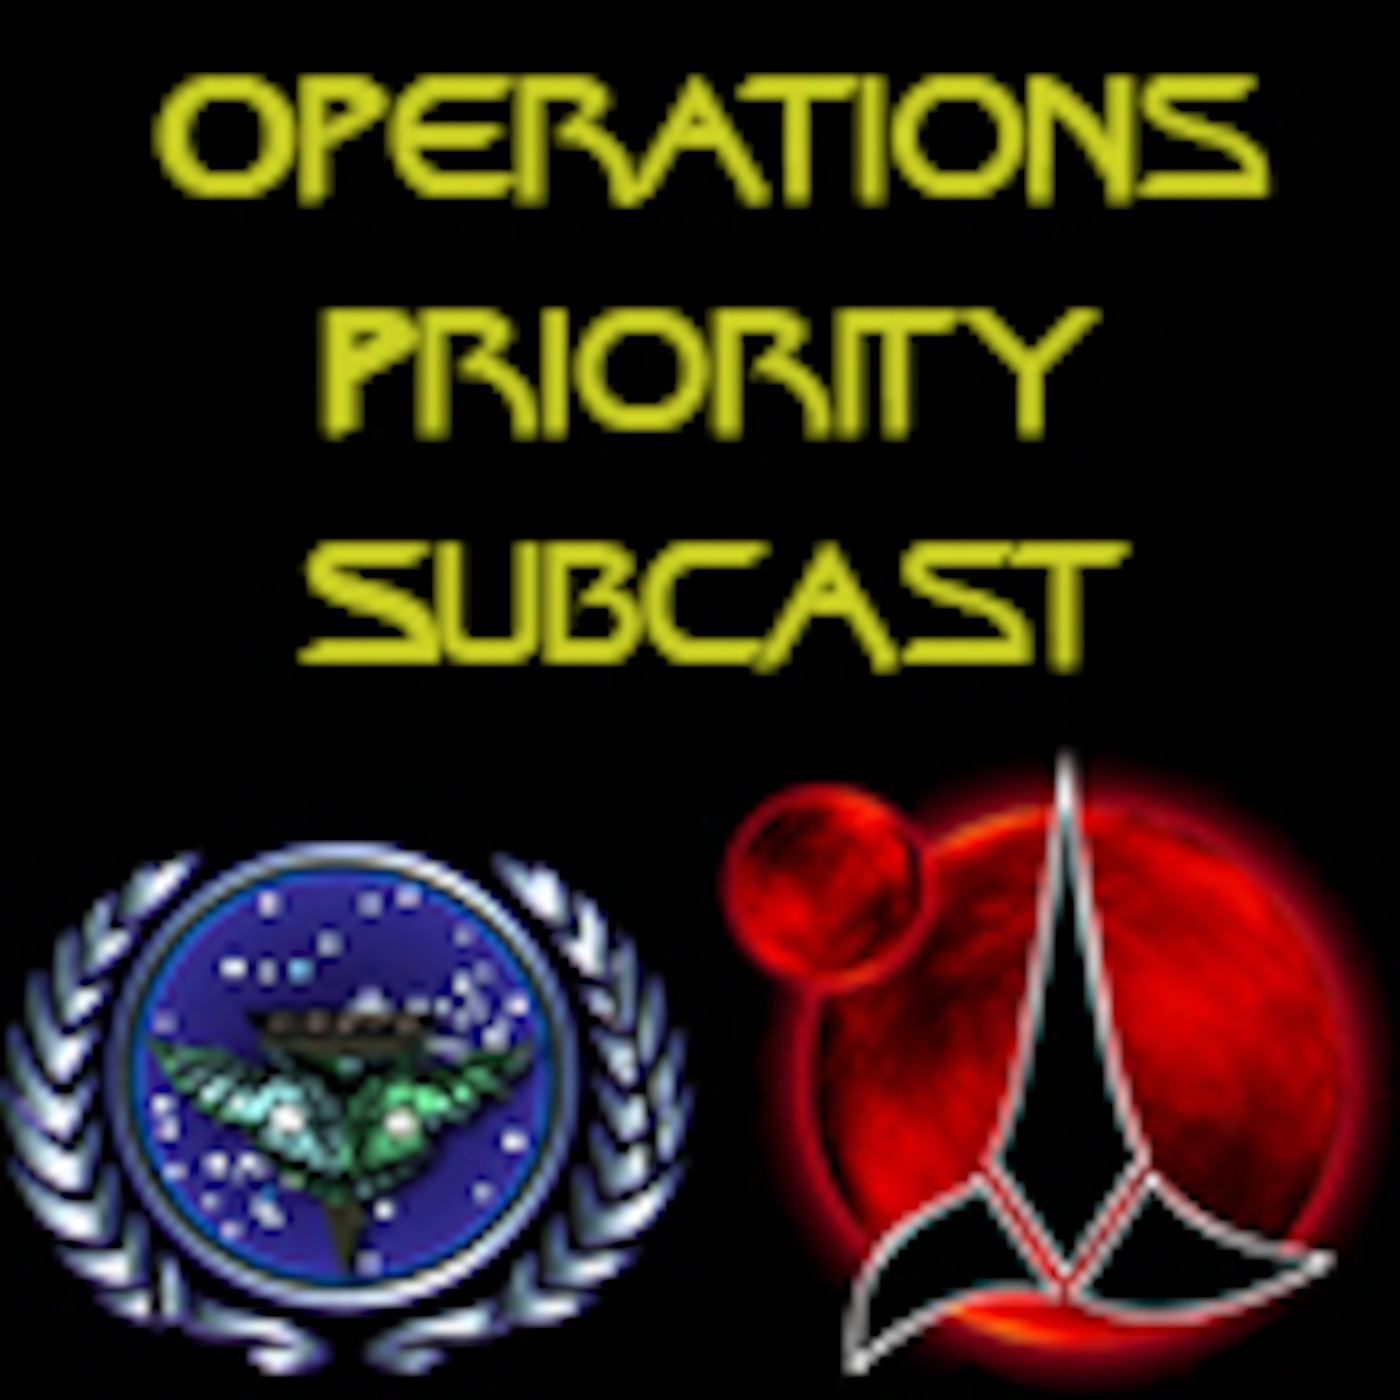 Operations Priority Subcast